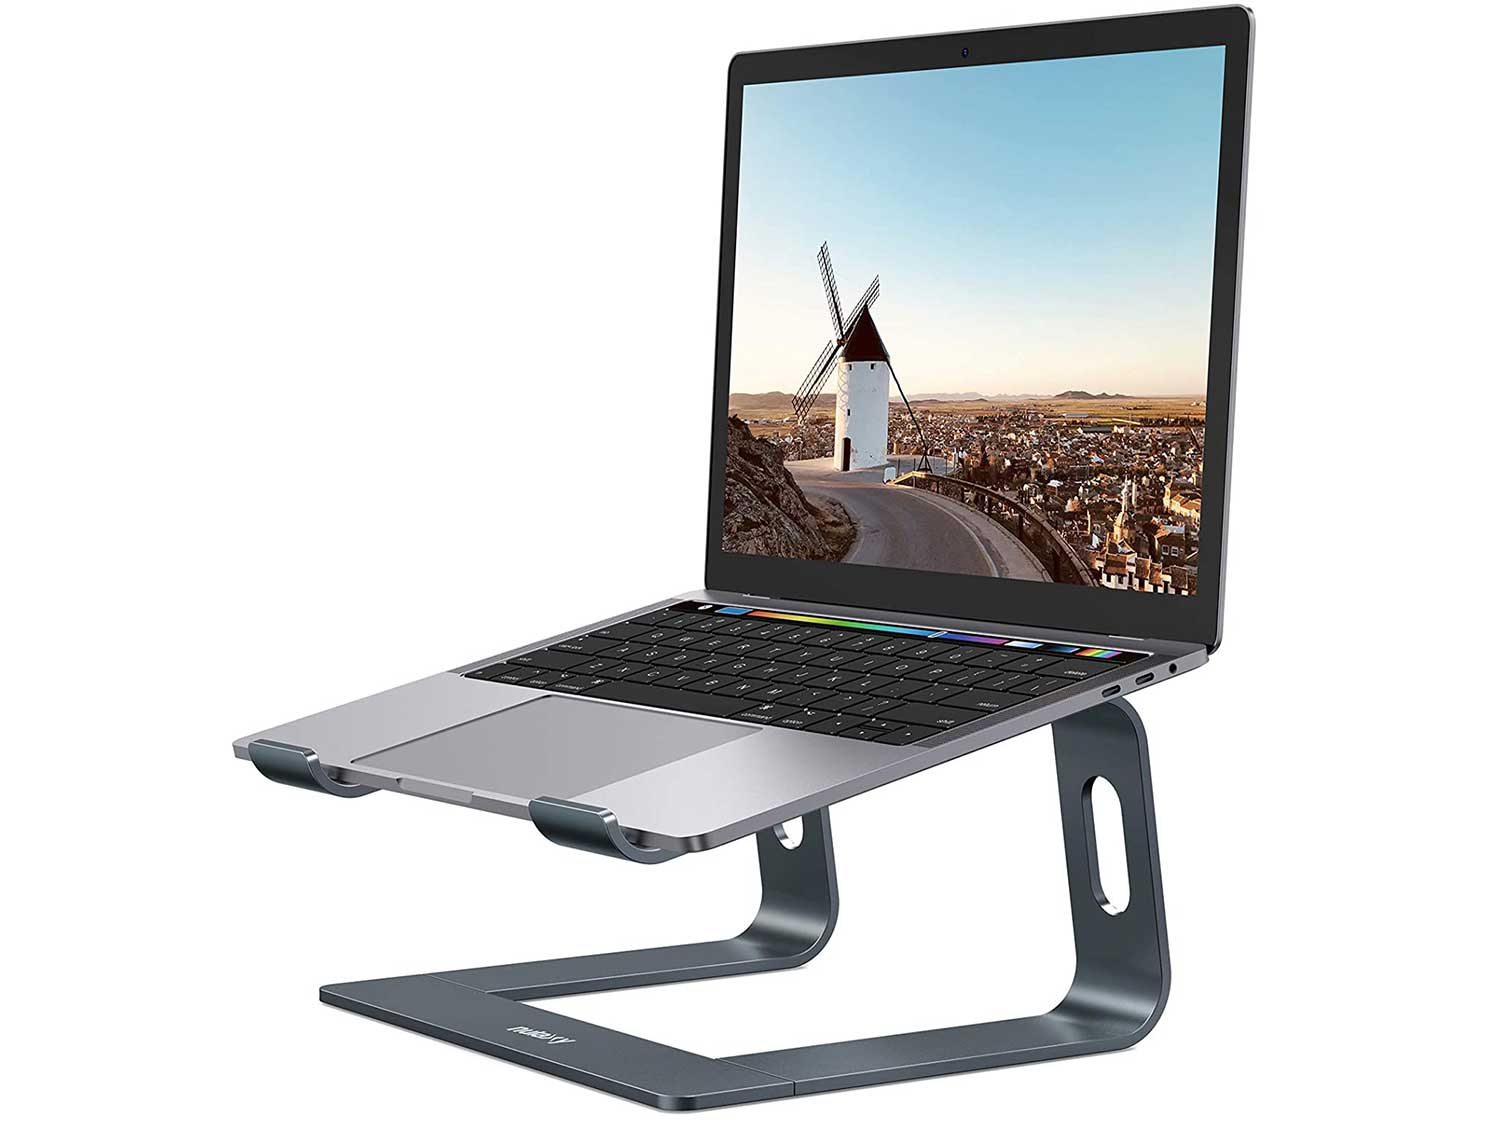 Nulaxy Laptop Stand, Ergonomic Aluminum Laptop Mount Computer Stand, Detachable Laptop Riser Notebook Holder Stand Compatible with MacBook Air Pro, Dell XPS, Lenovo More 10-15.6